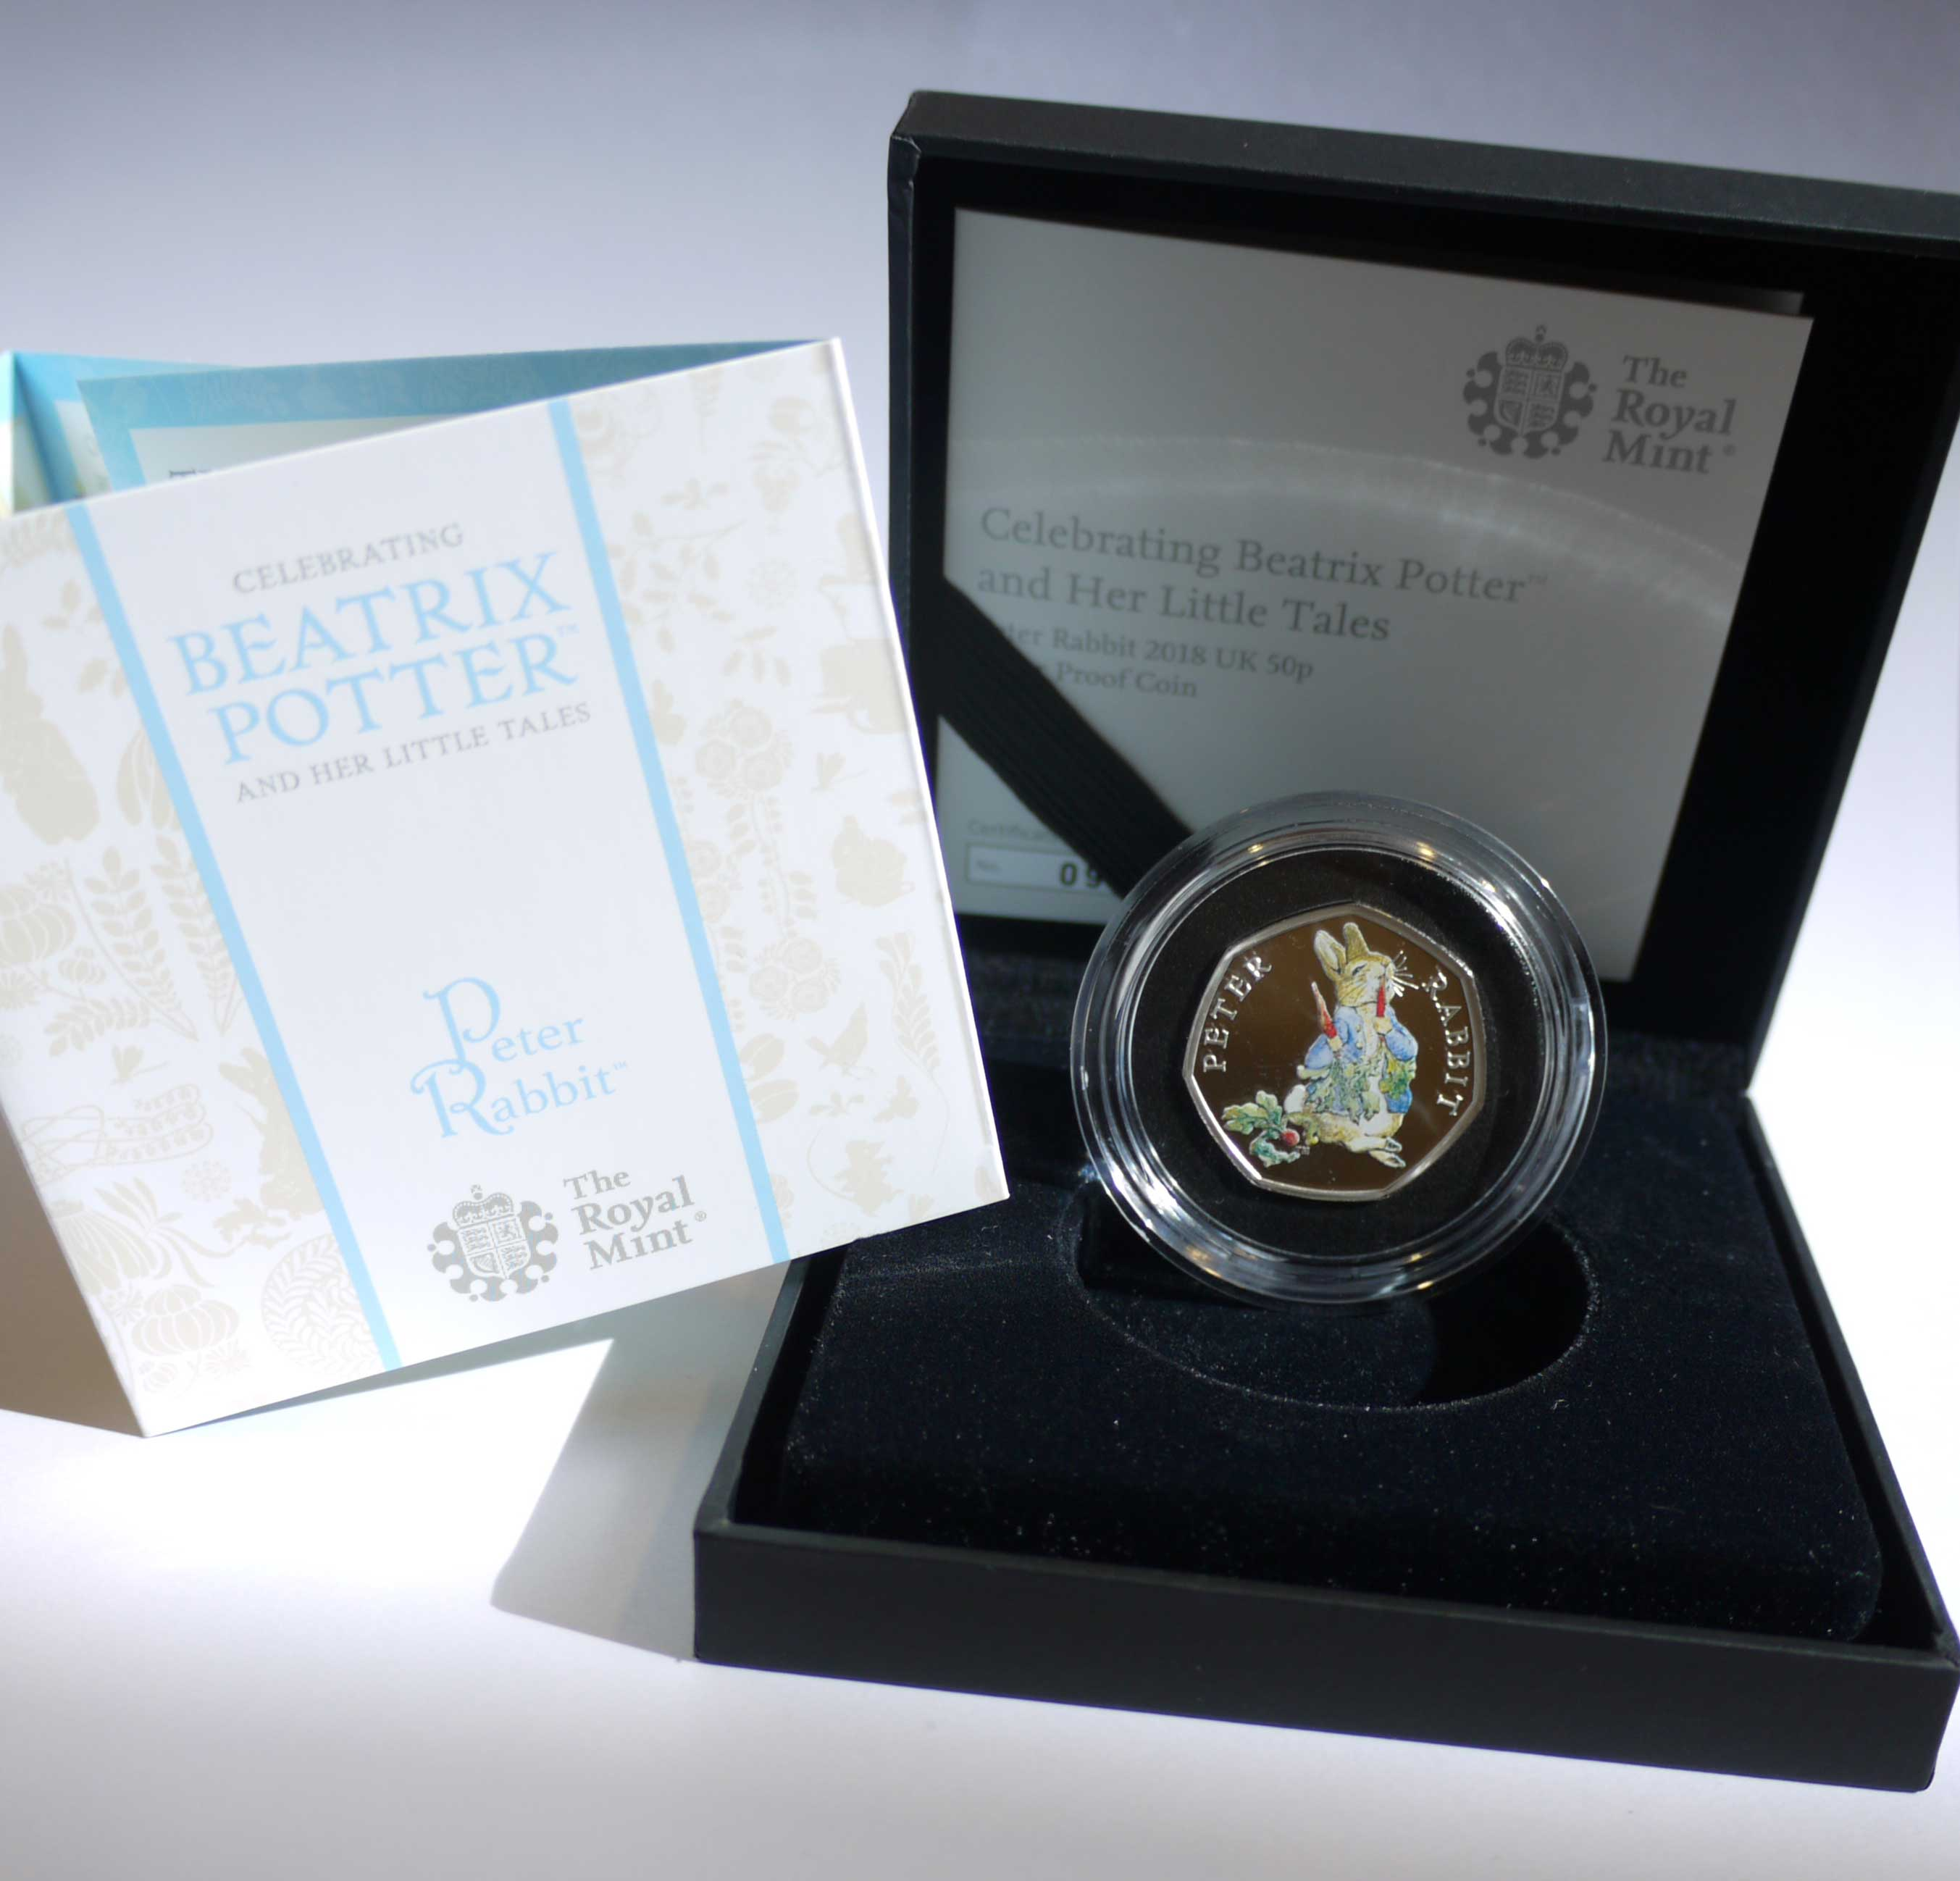 Peter Rabbit 2018 Royal Mint Coloured 50p Silver Proof Coin in a Black Box